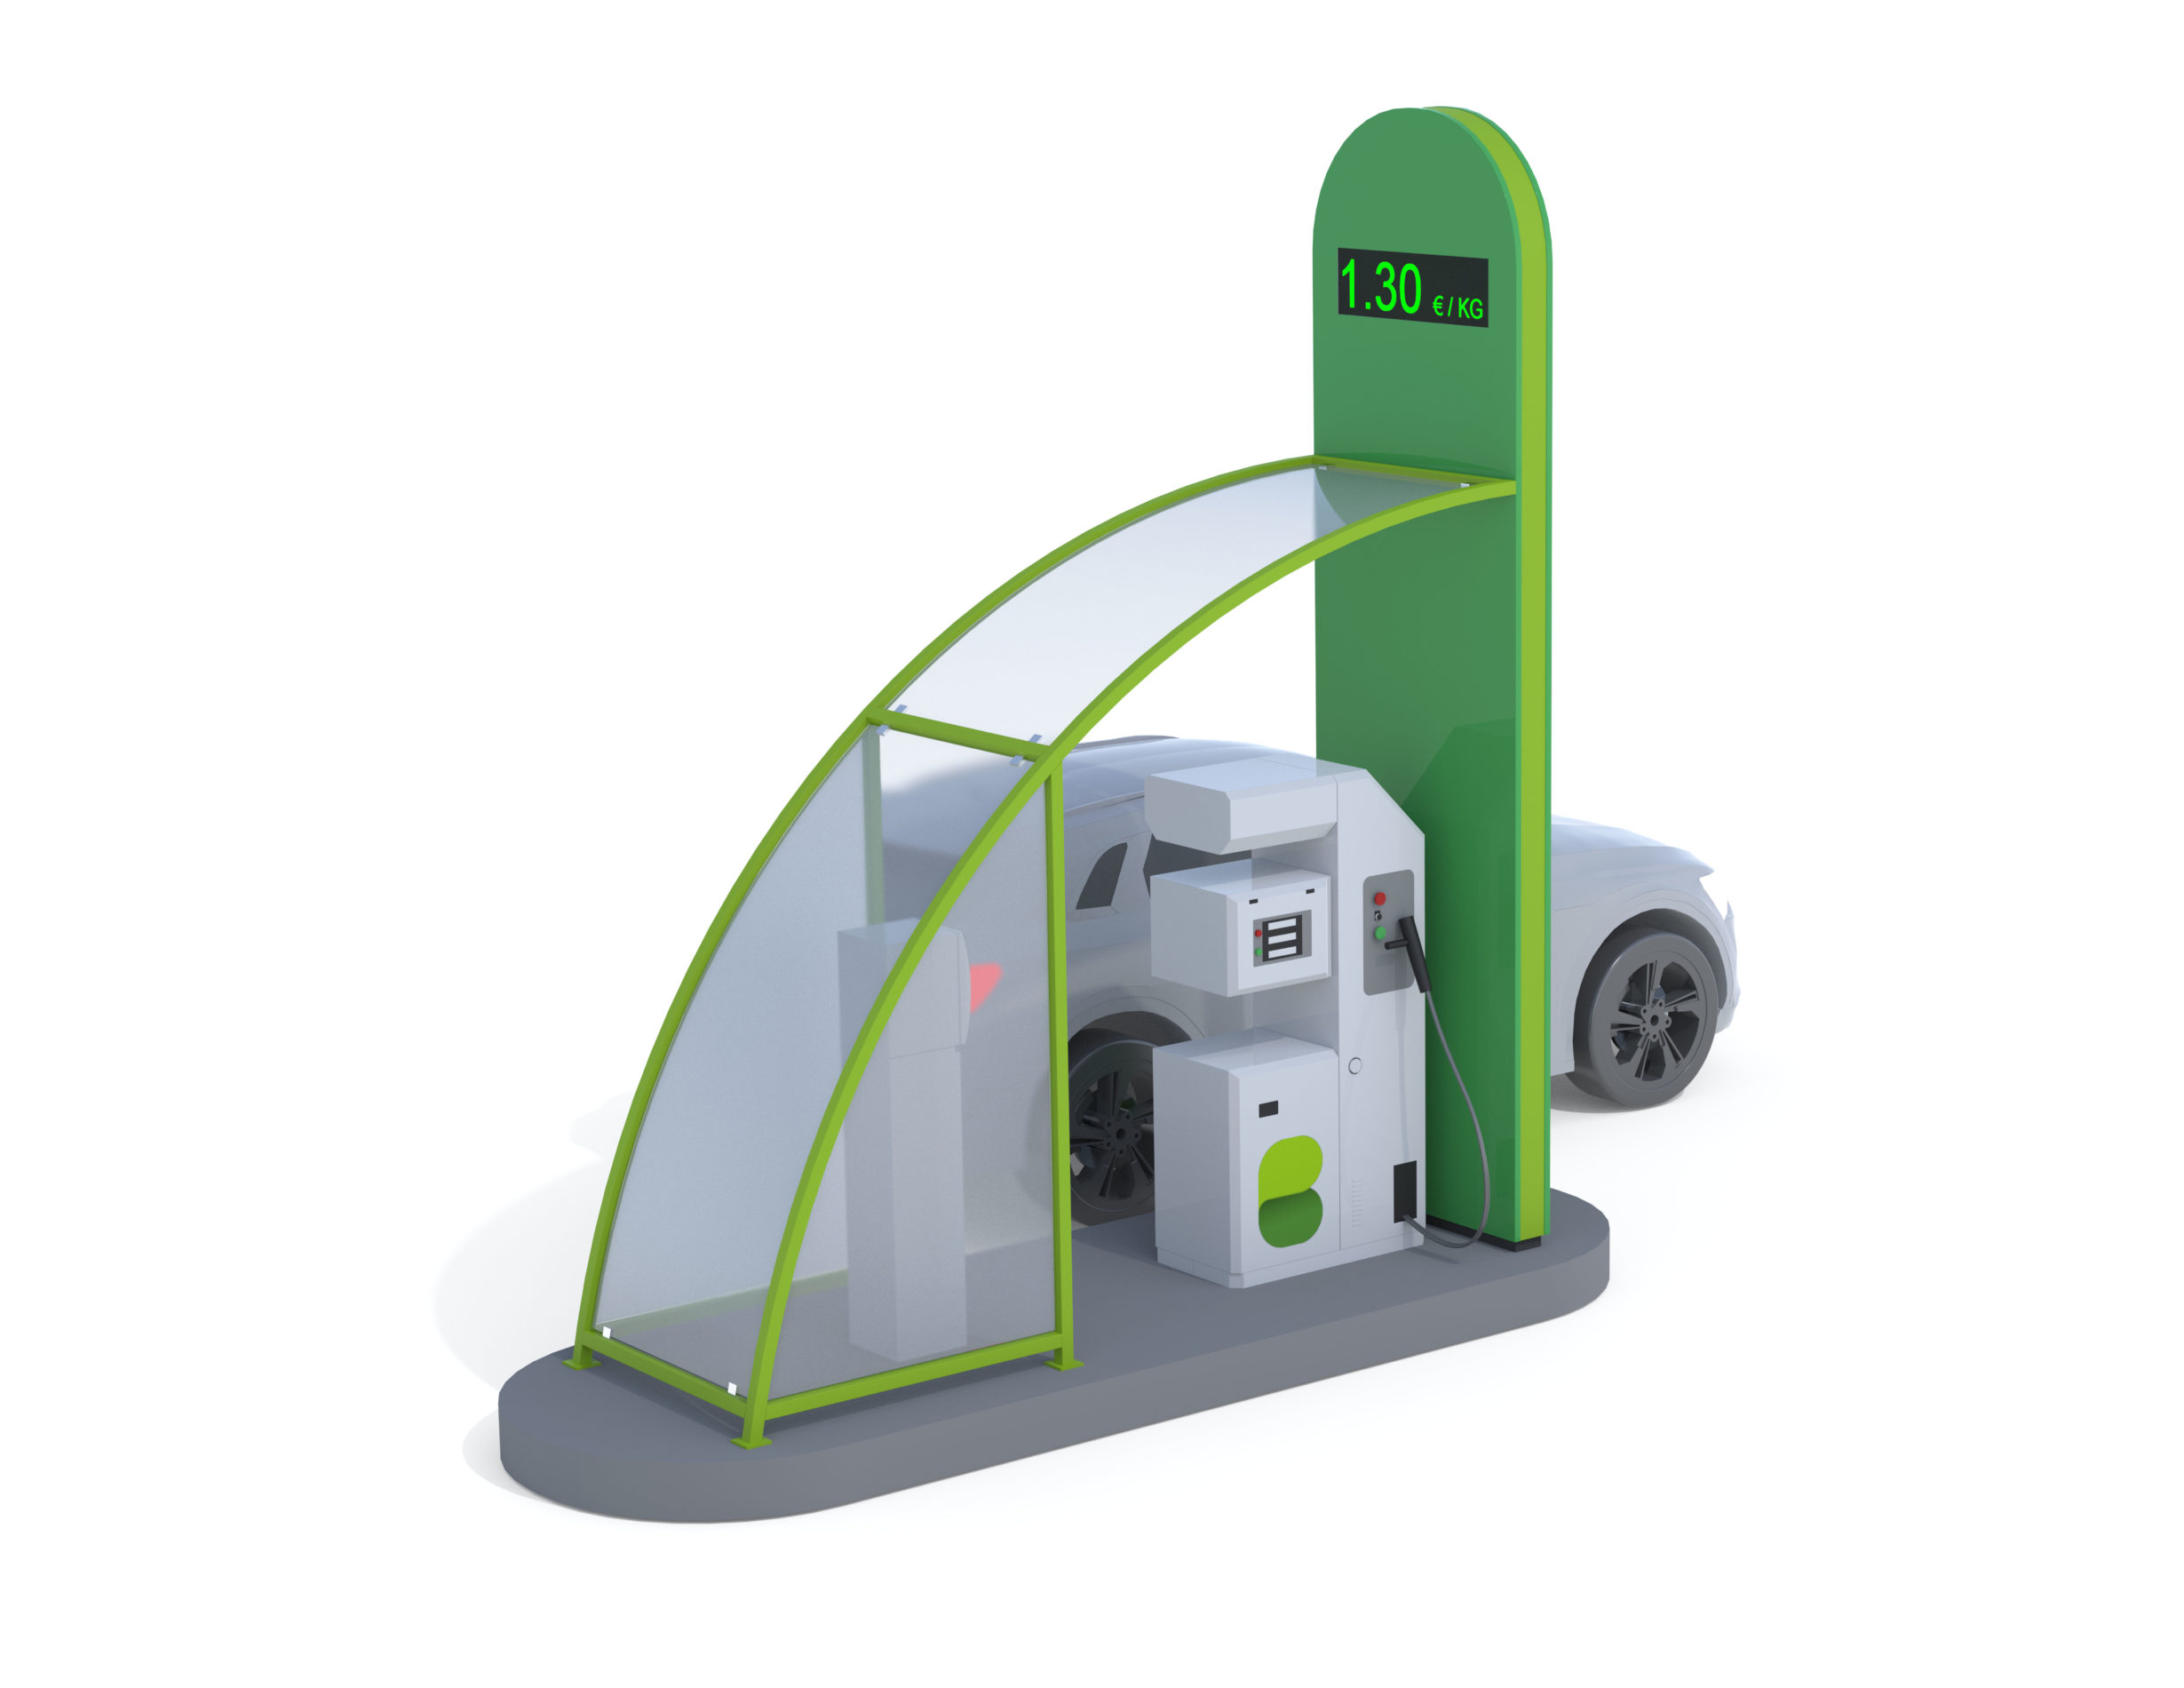 BioWave gas filling station of the BioPark concept developed by Biovoima.